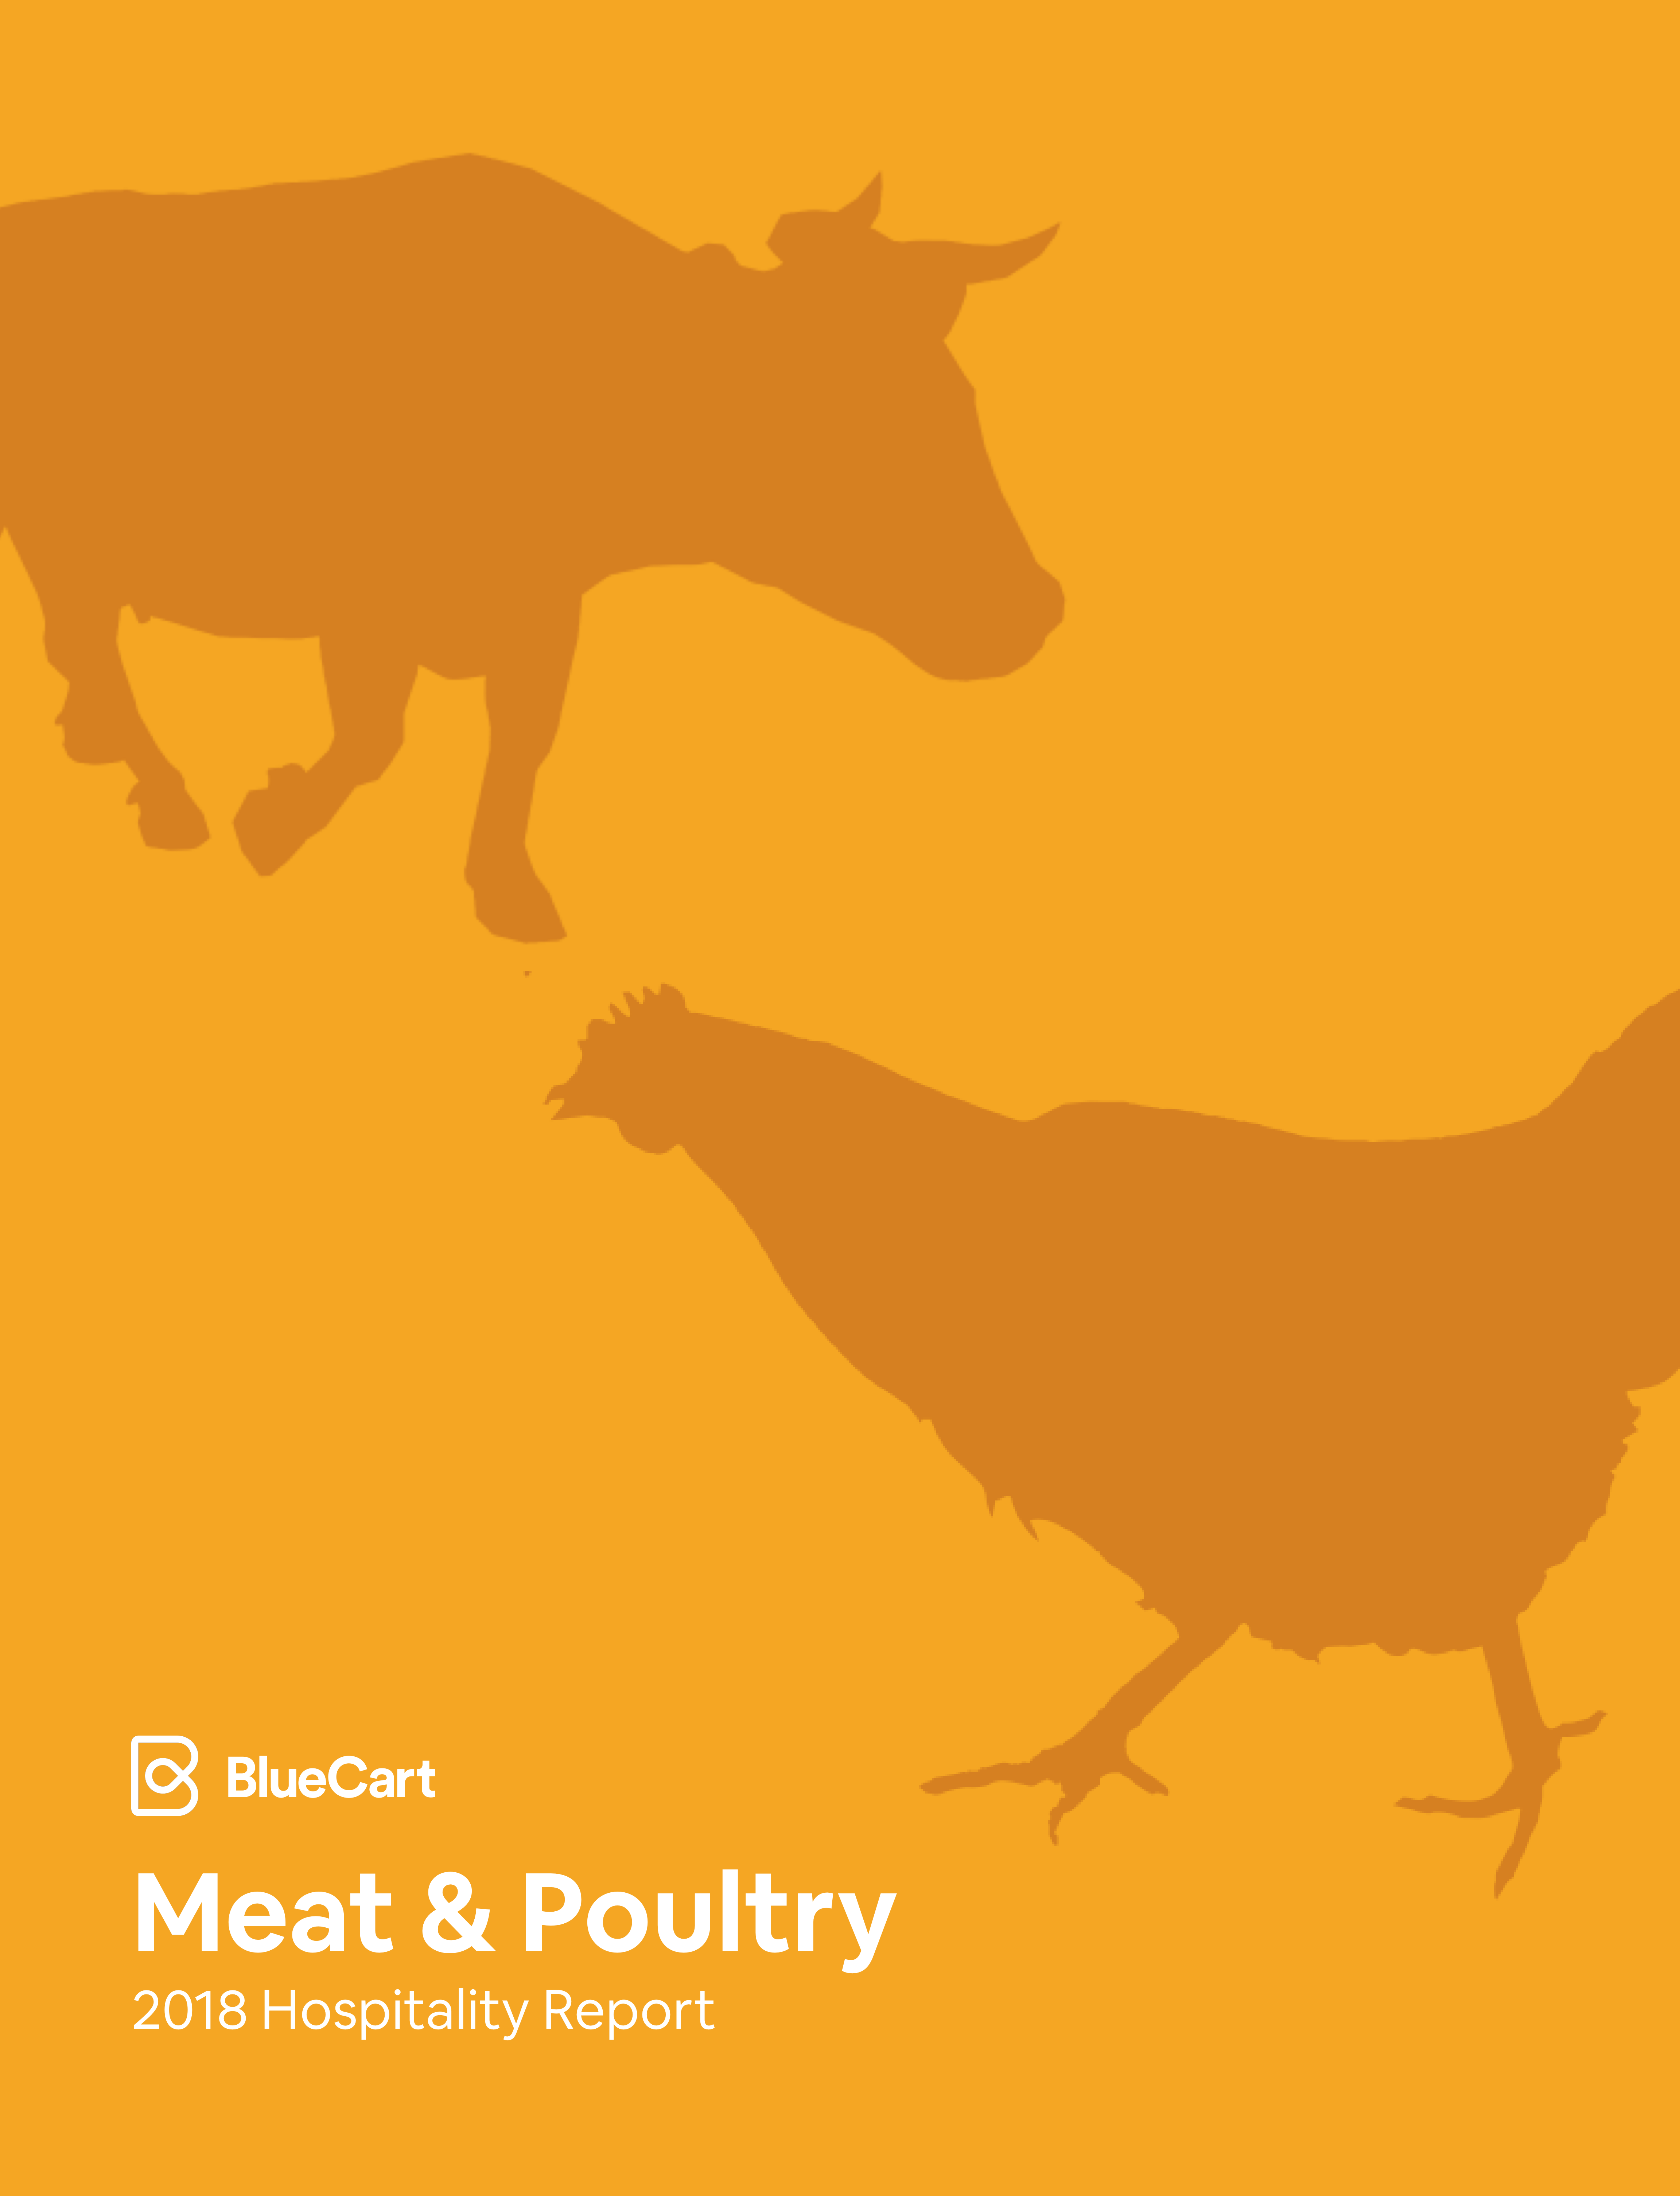 Cover of the 2018 Meat & Poultry Report